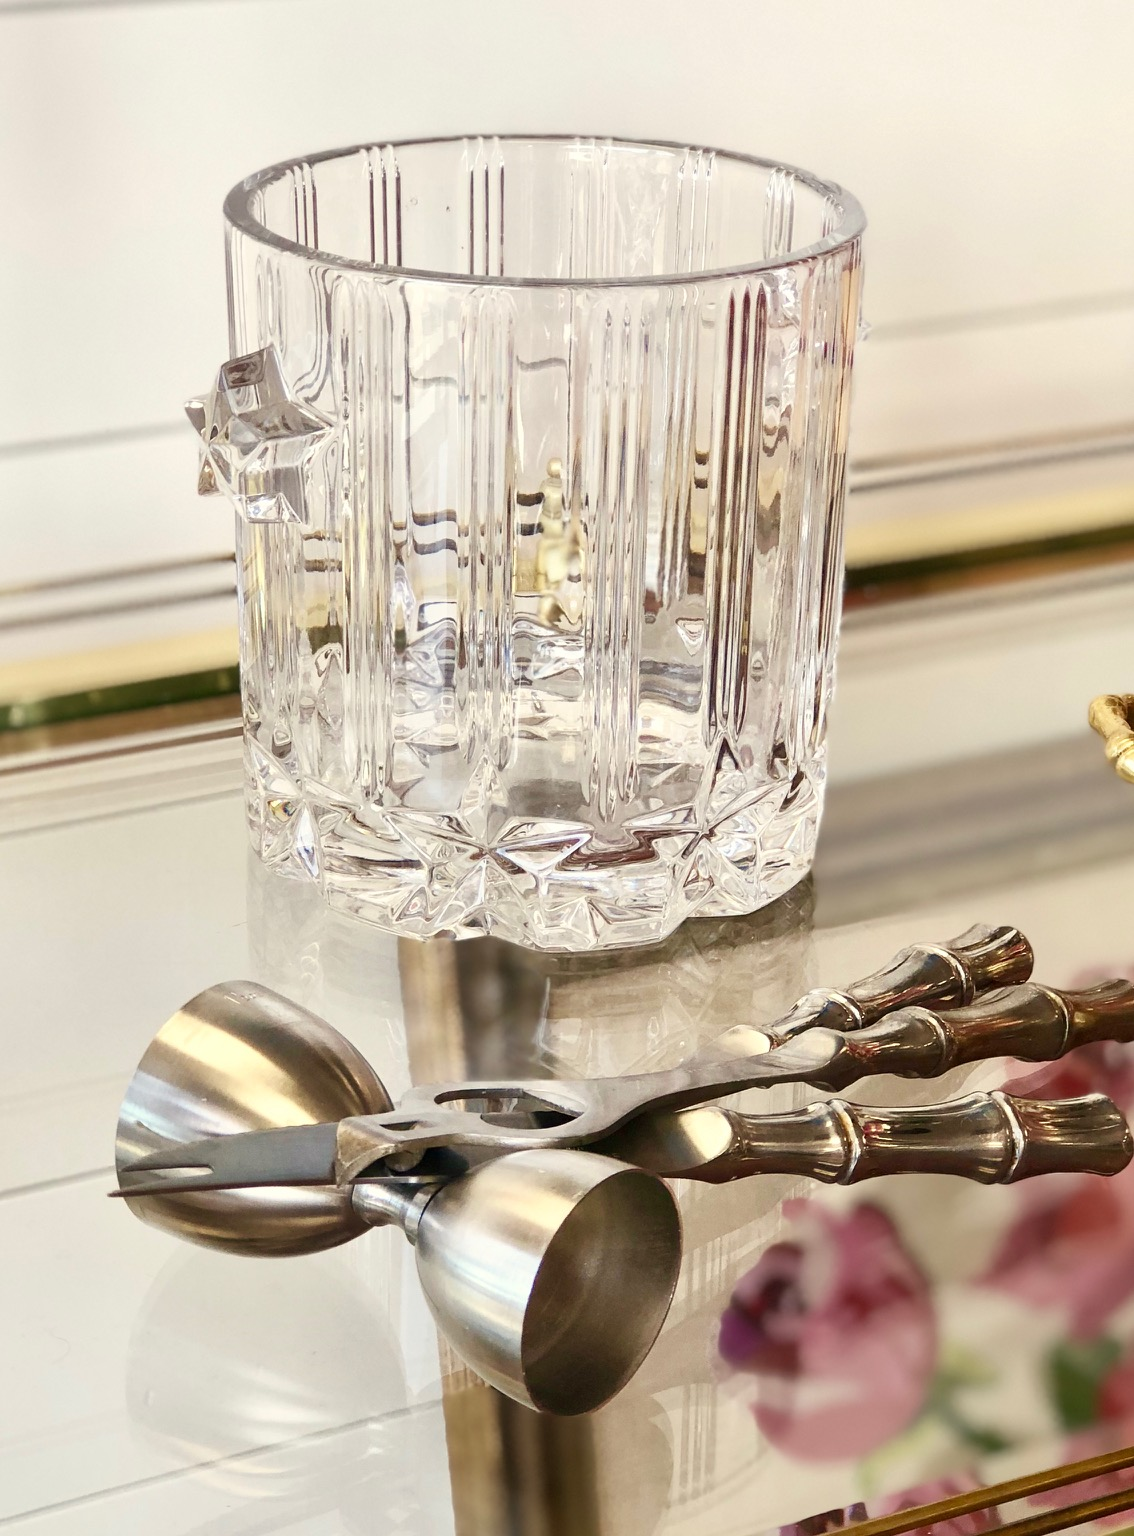 The red and gold chinoiserie glasses are begging for cool ice from the crystal ice bucket and the bamboo stainless bar accessories make it easy to measure and mix concoctions.